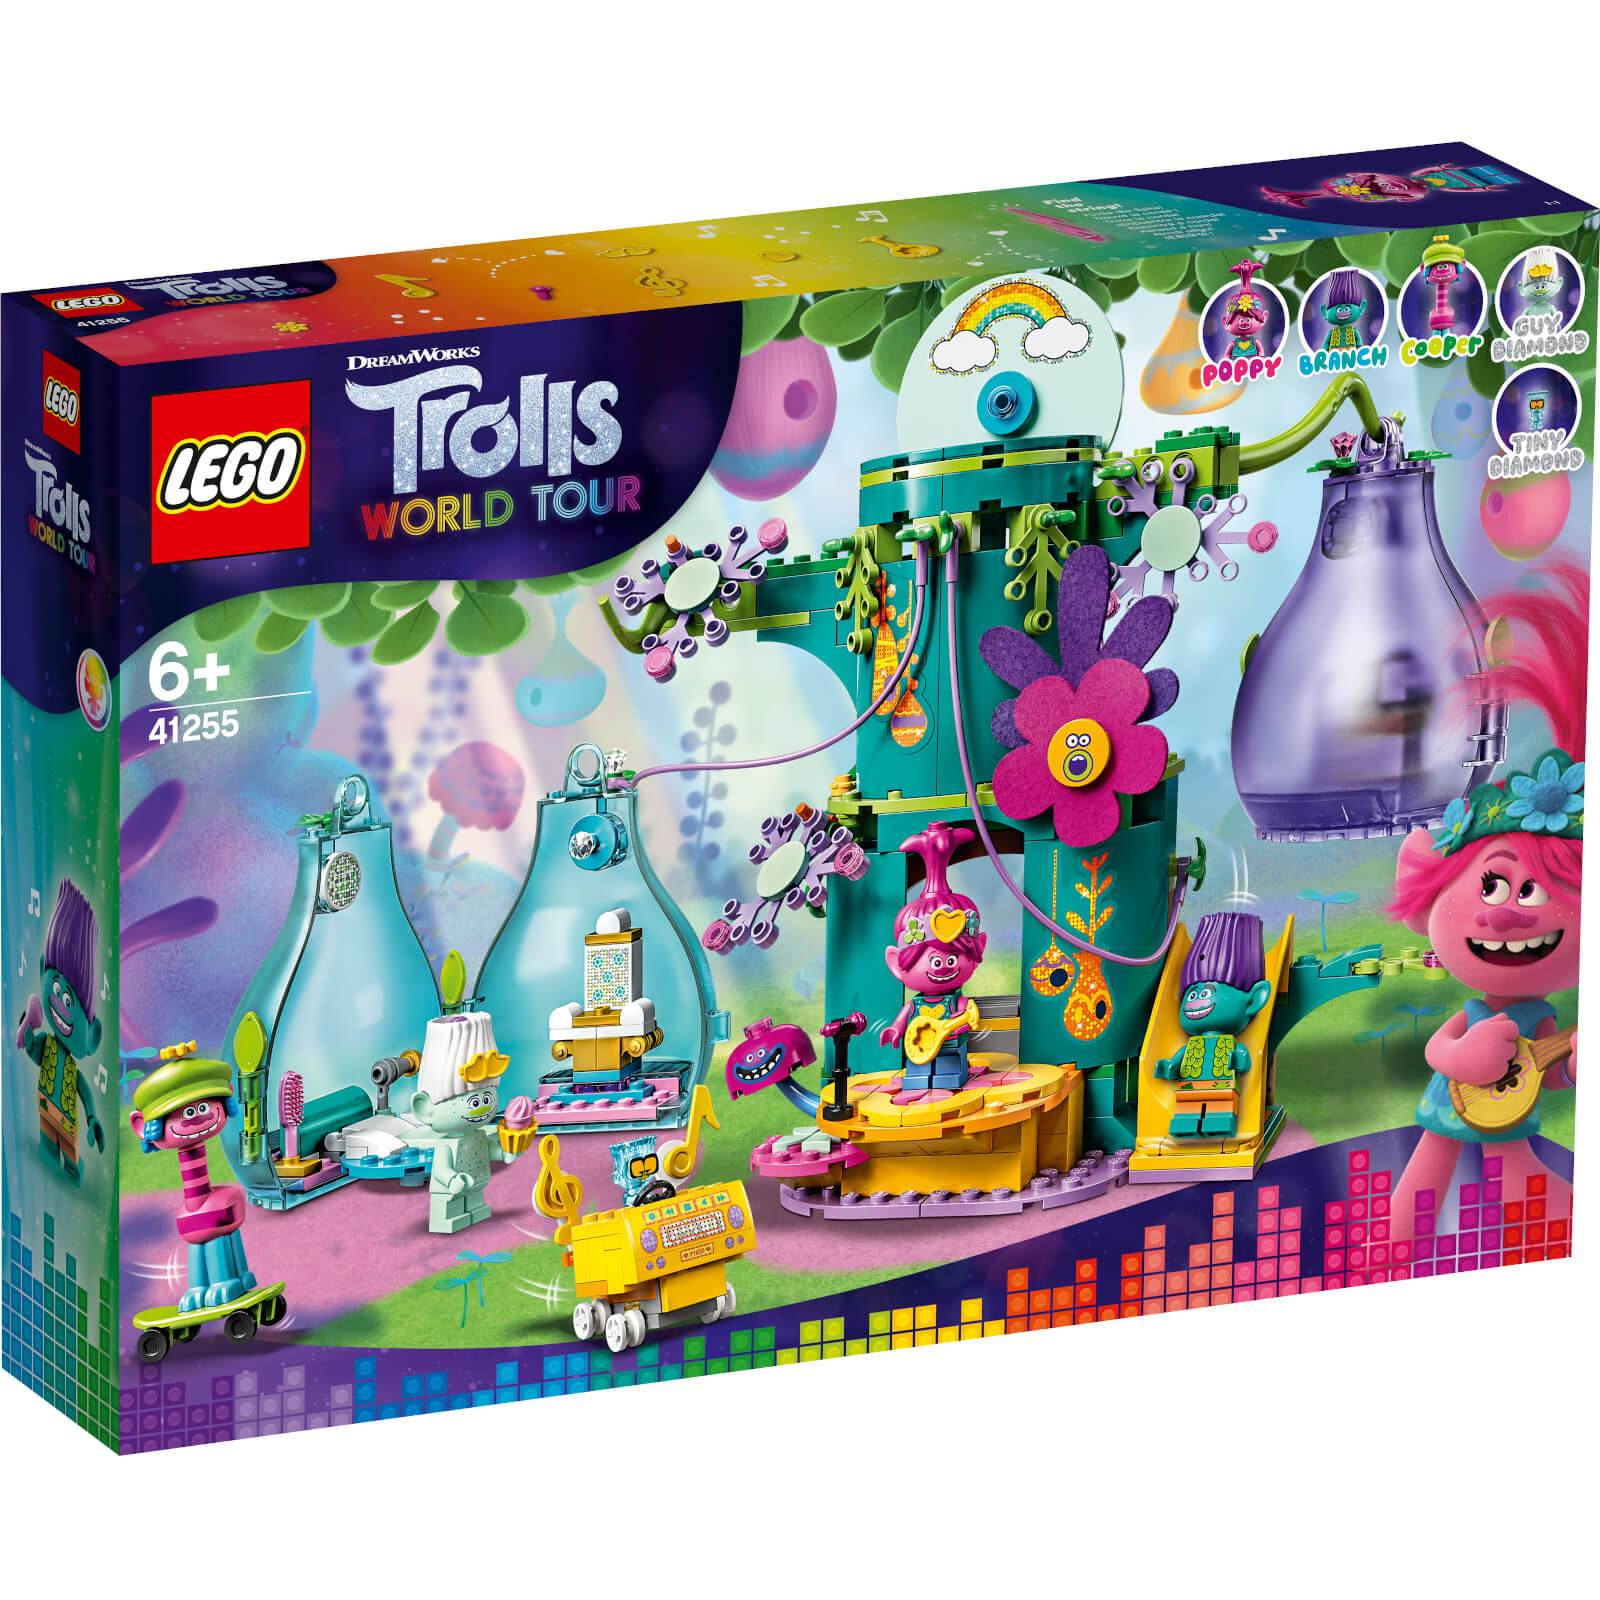 Lego Trolls: Pop Village Celebration (41255)